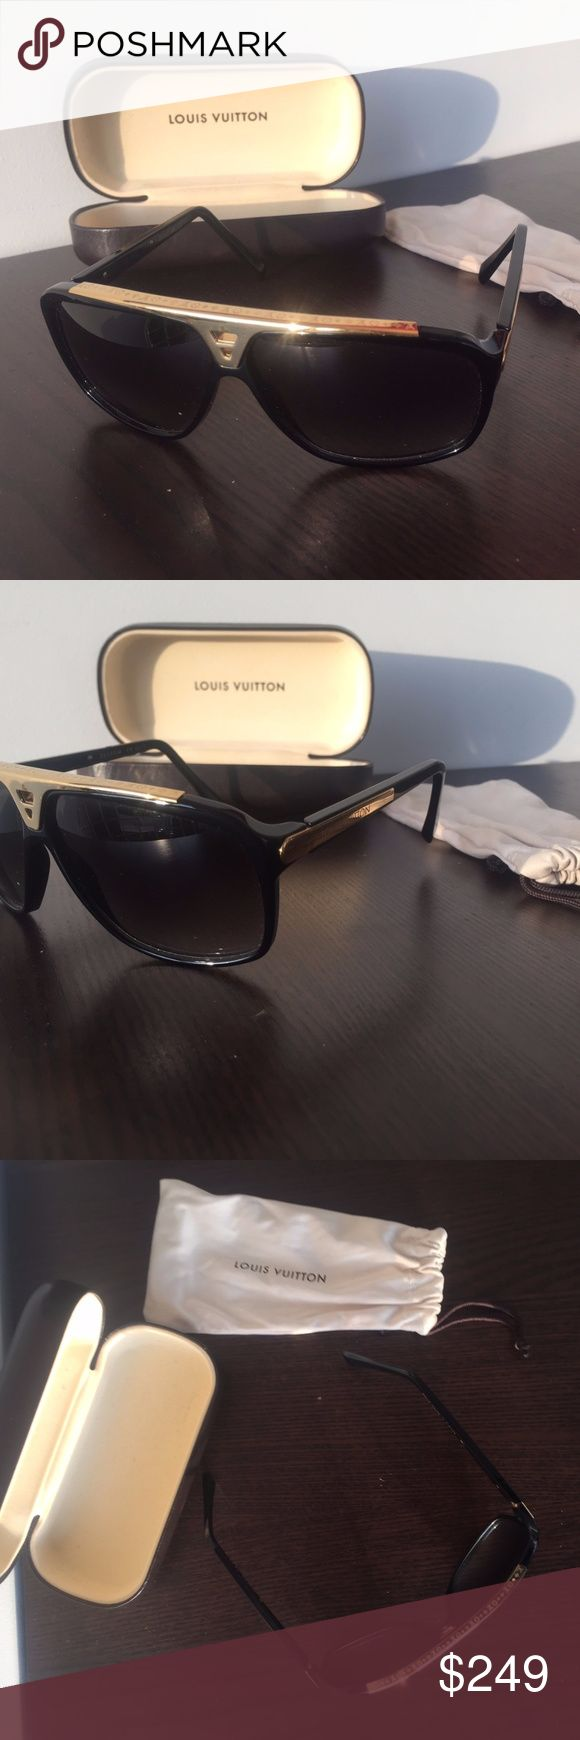 """Original Louis Vuitton """"Evidence"""" Sunglasses - Model Number Z0350W - 100% UV protection - Matching graded lenses - Sculpted and hand-polished acetate frames - Bridge and tips enhanced with a metal inlay - Minimally worn only 4-5 times with minor wear Louis Vuitton Accessories Sunglasses"""